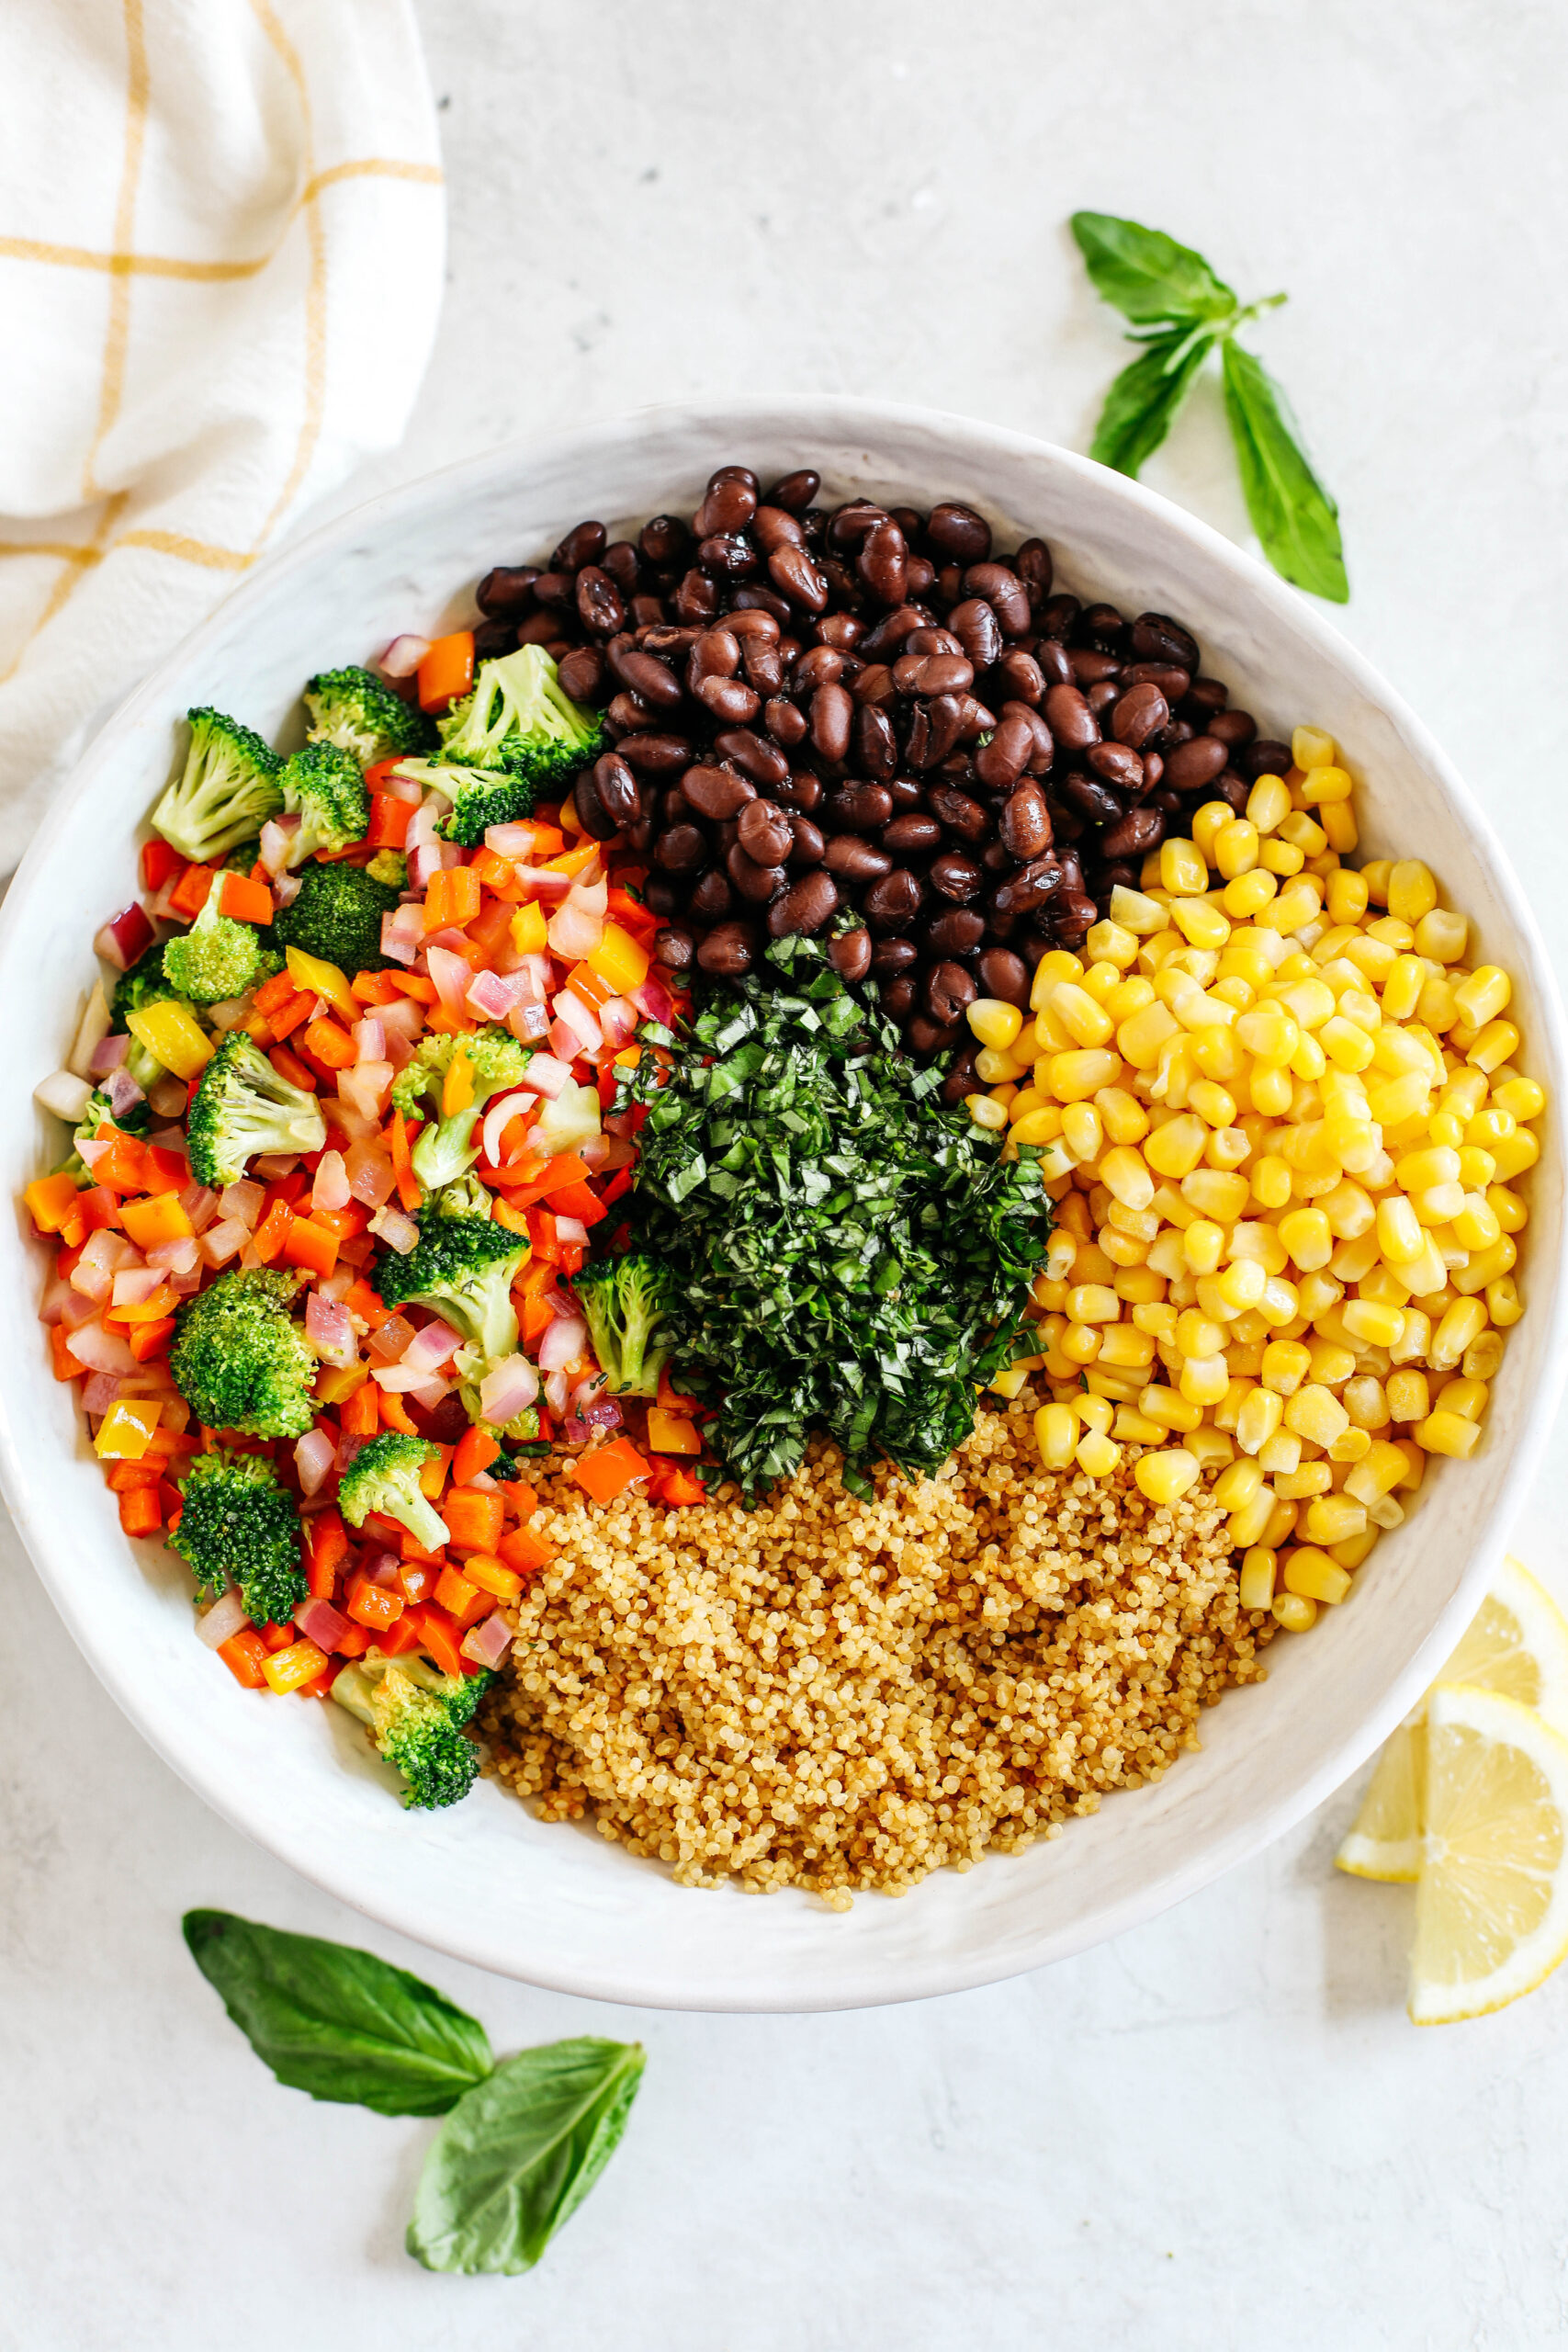 The perfect Summer Quinoa Salad made with a delicious combination of sautéed veggies, black beans, corn, and fresh basil all tossed with a lemon balsamic dressing!